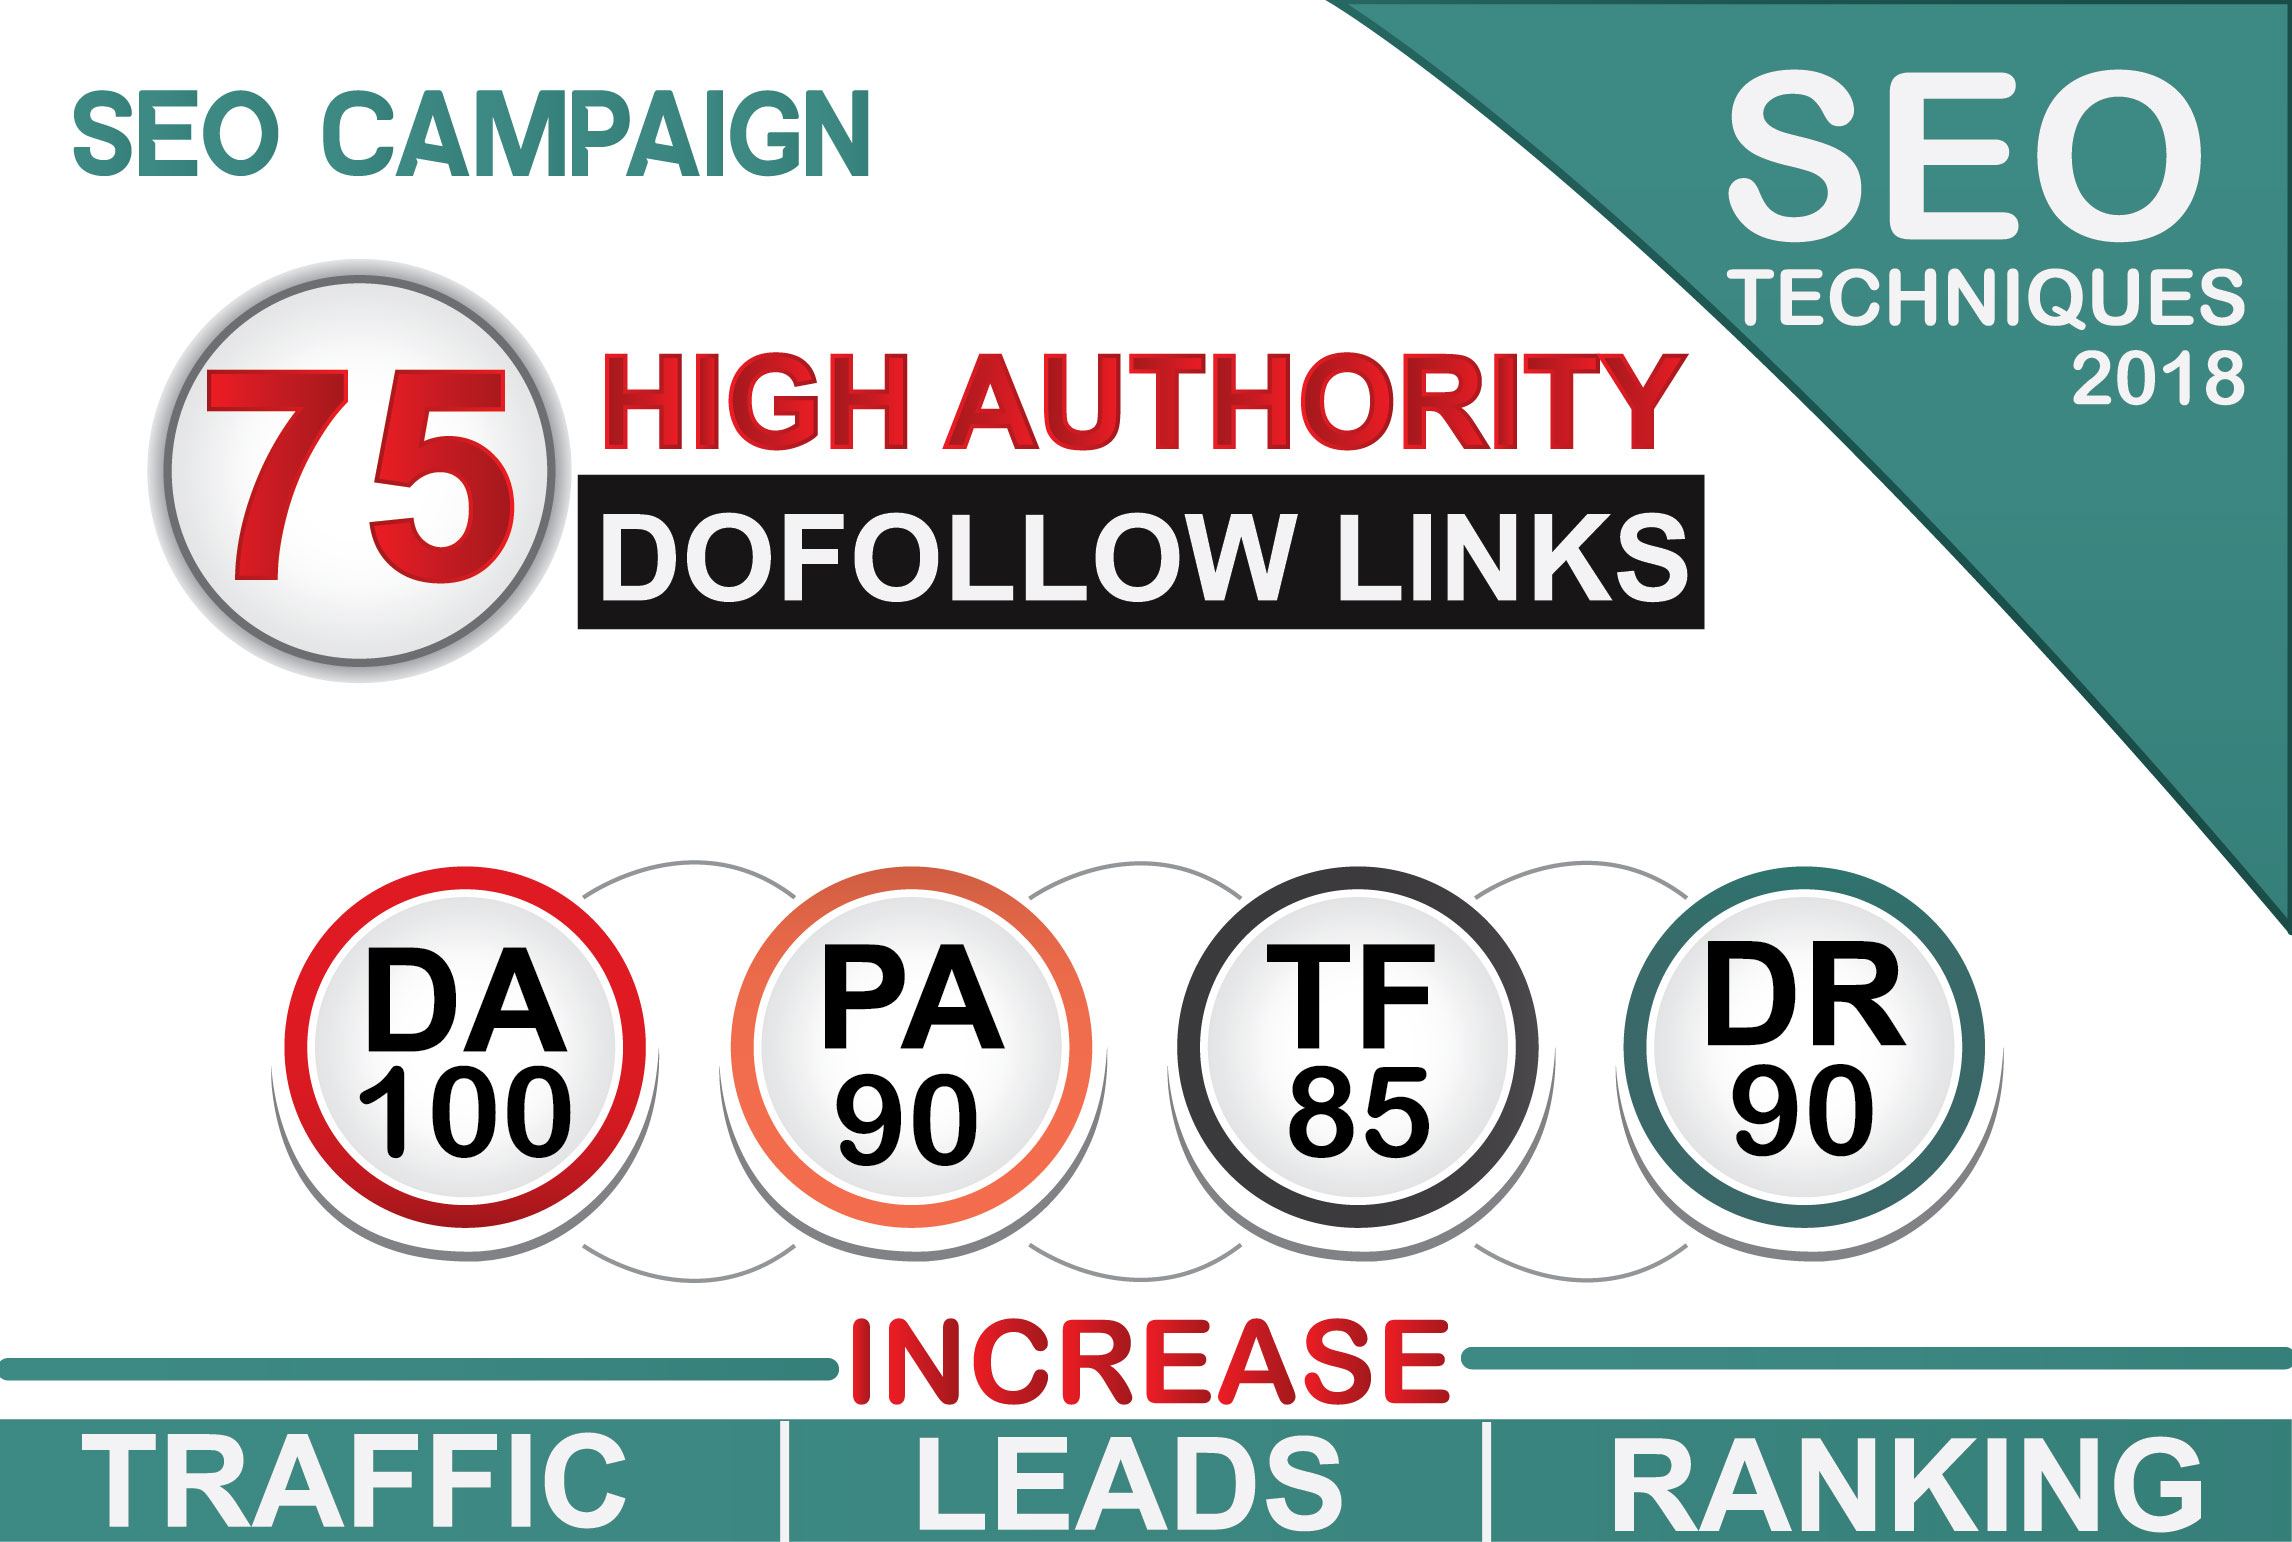 I Will Do 75 High Authority Dofollow Backlinks,Da100